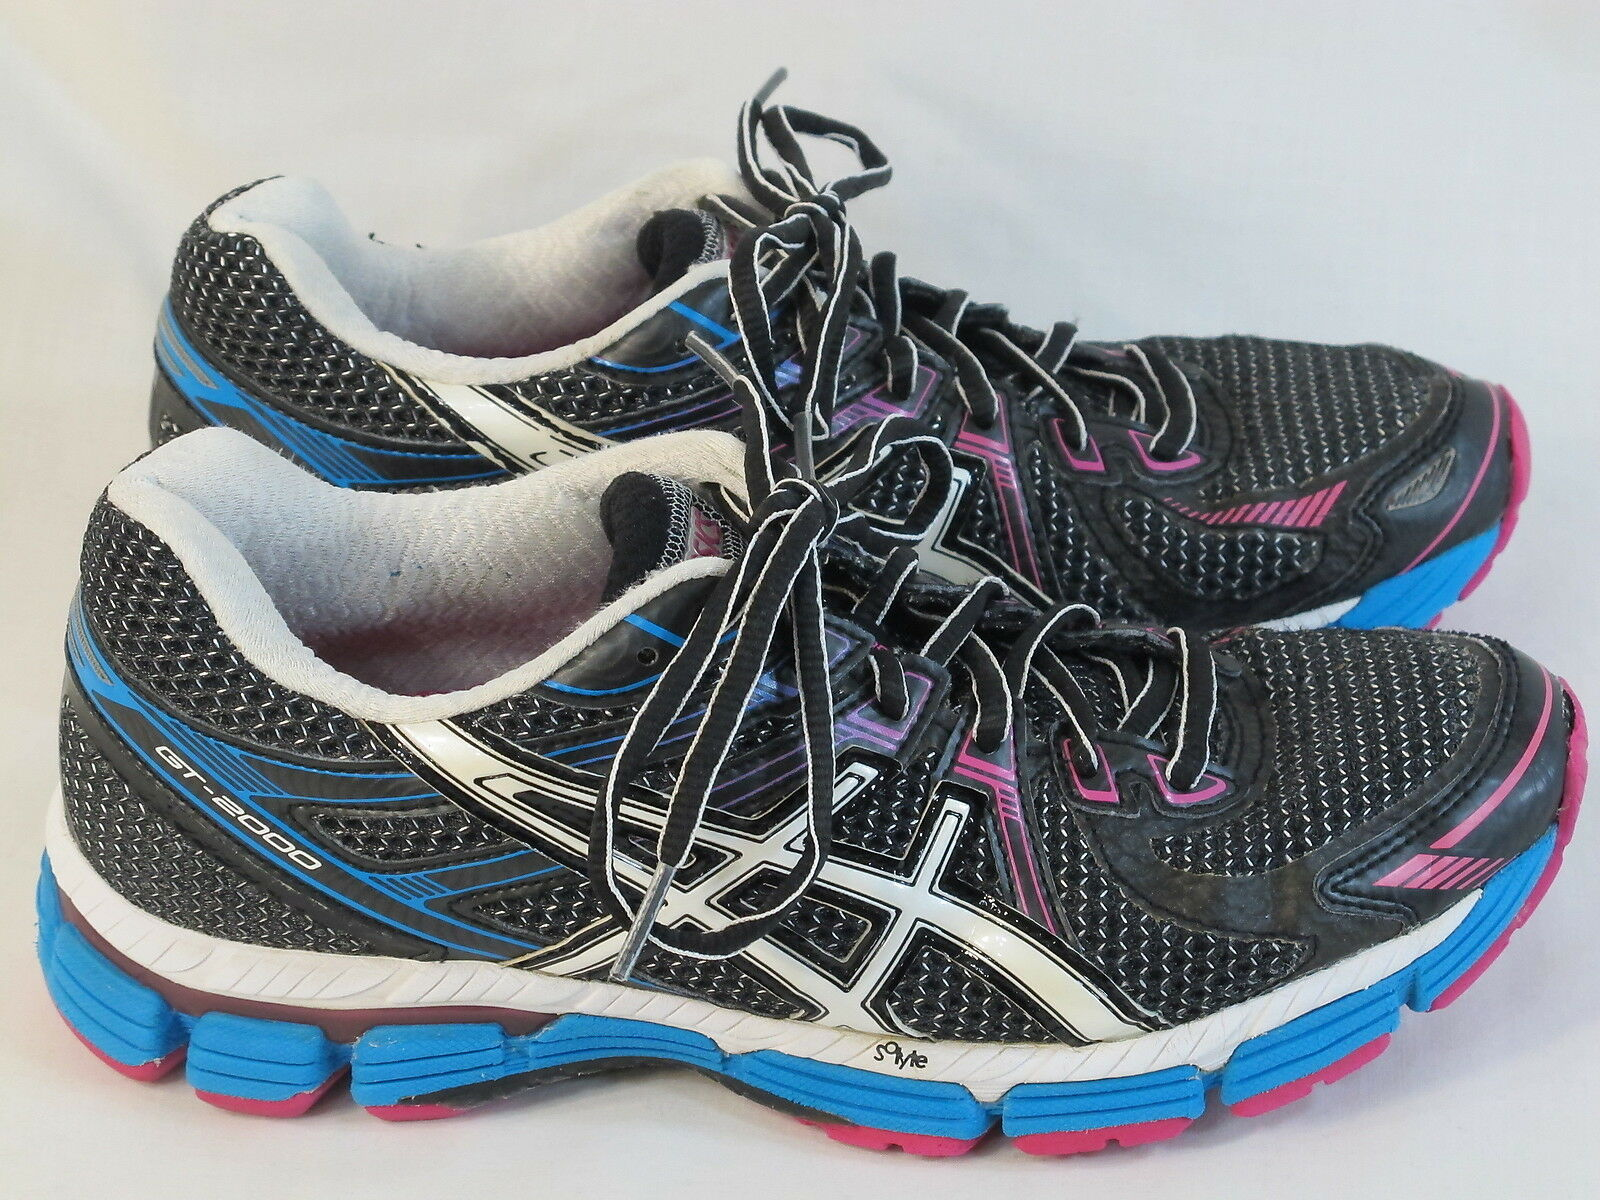 ASICS GT 2000 Running Shoes Women's Size 8 US Excellent Plus Condition